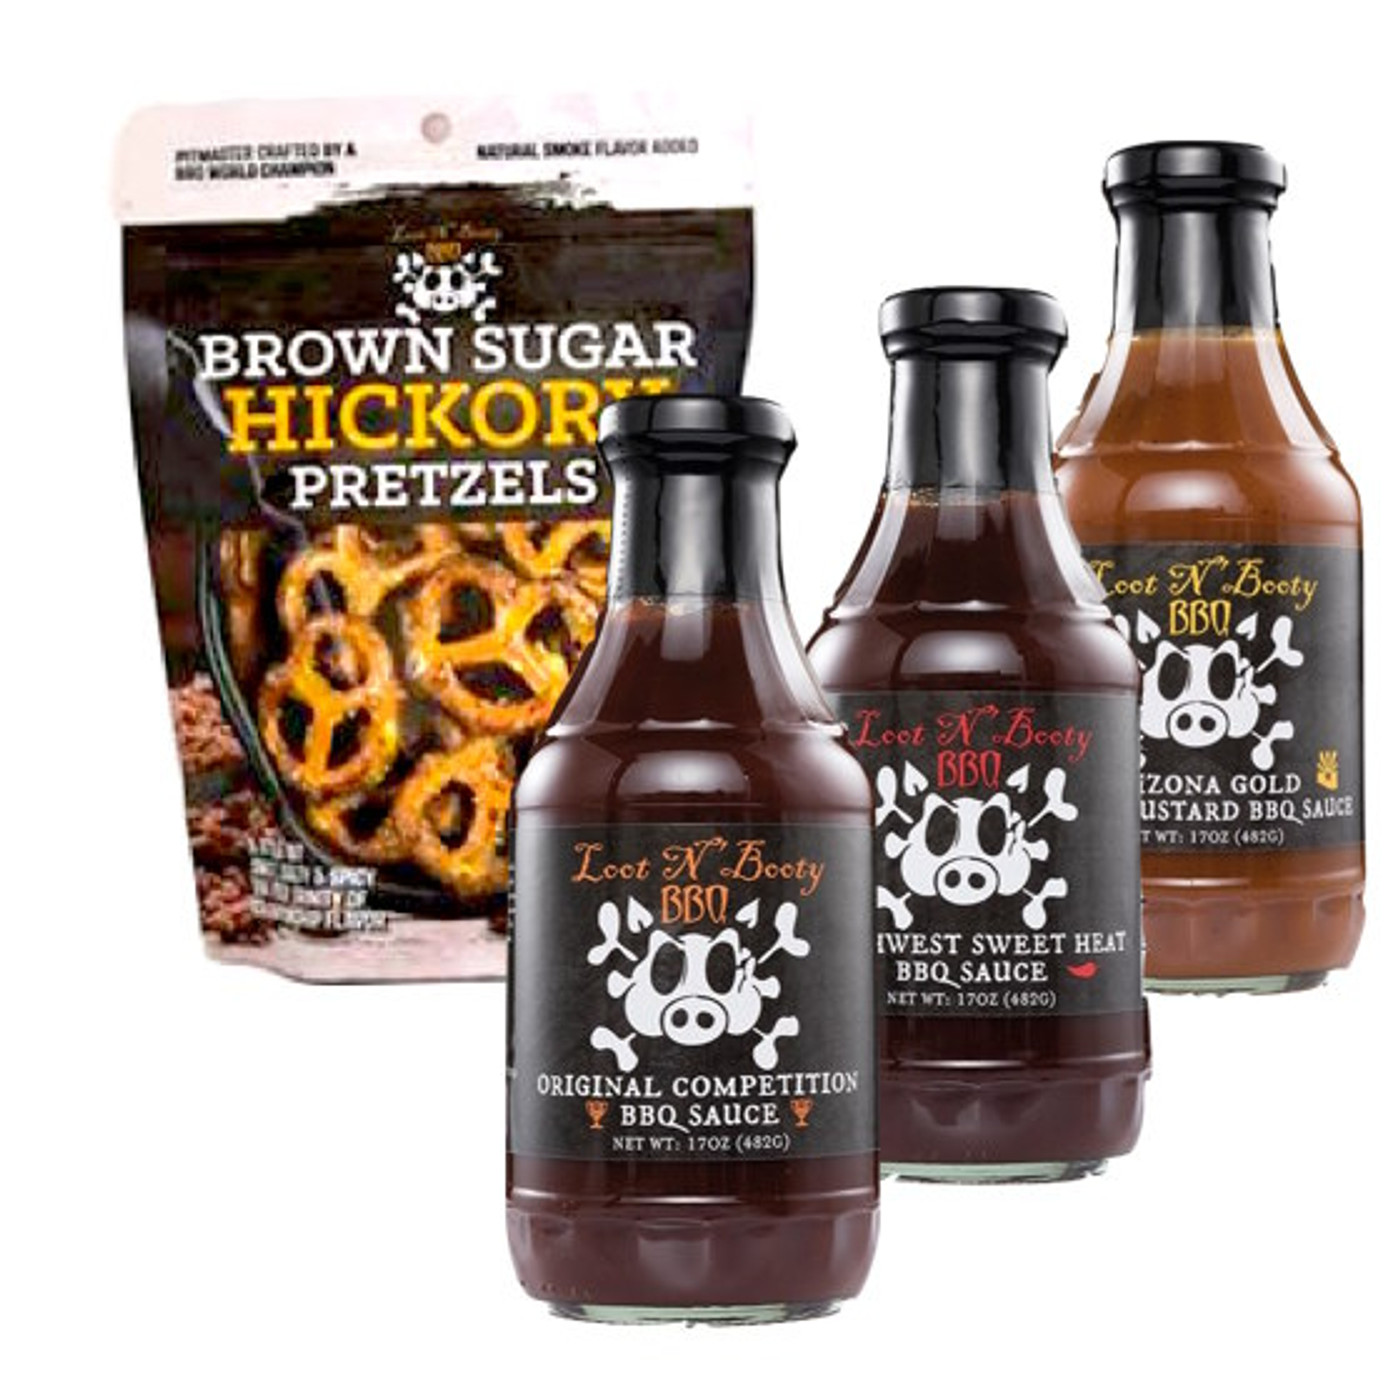 Loot n' Booty BBQ - Pitmaster 3 Sauce & Pretzels Pack